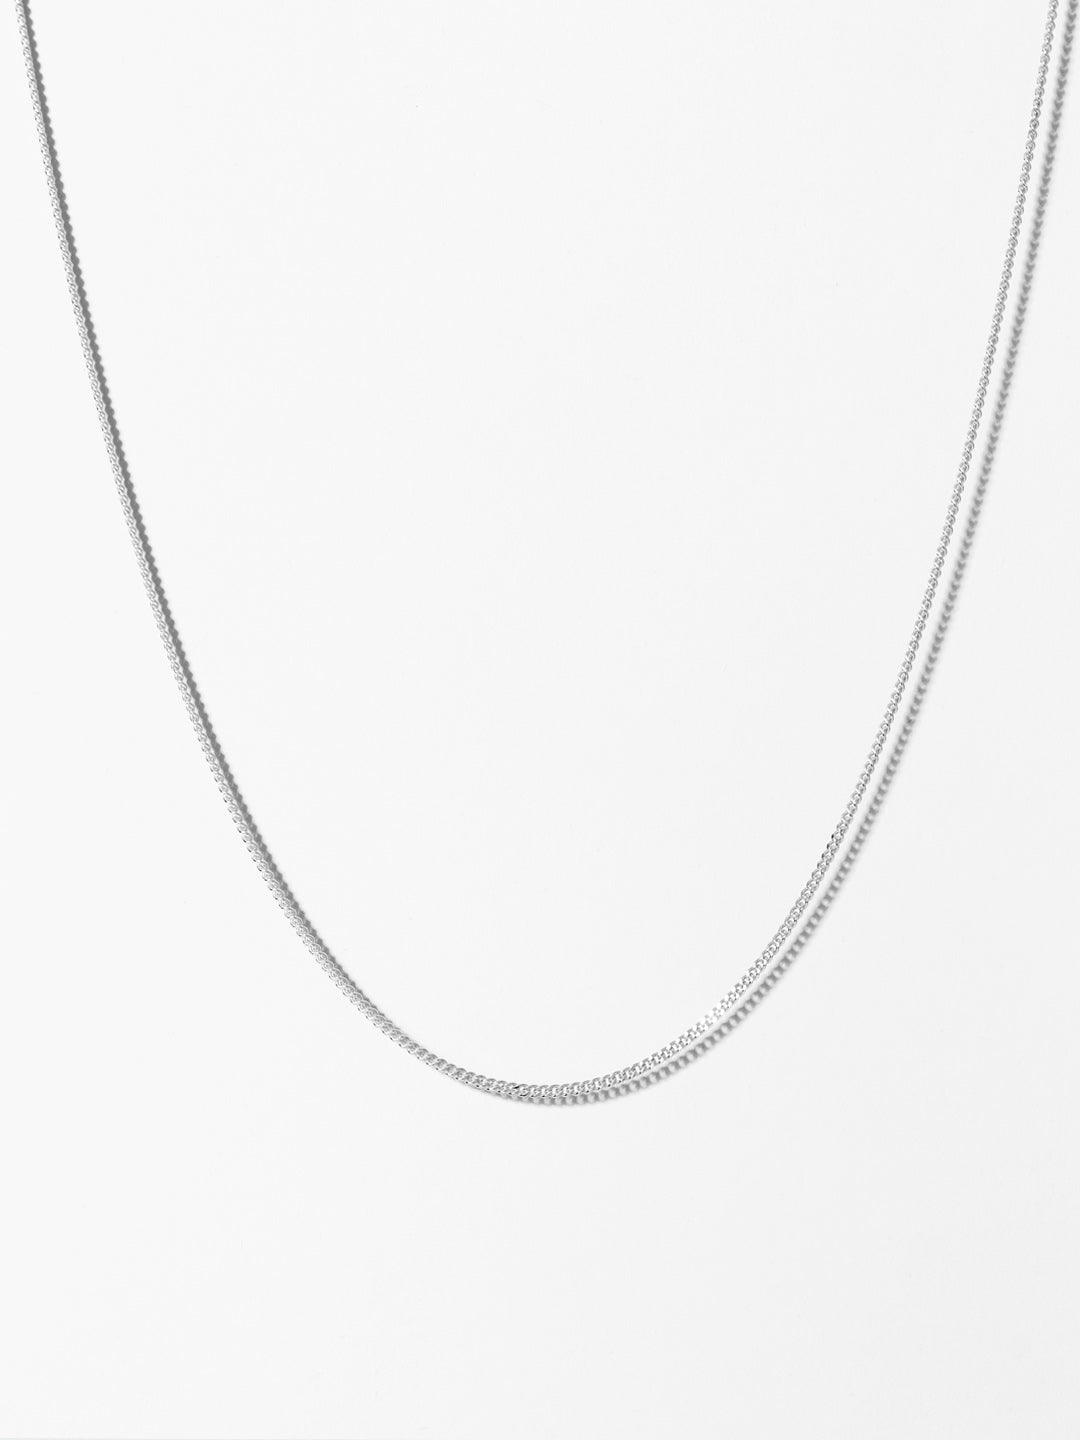 Ana Luisa Necklaces Chain Necklace Curb Chain Necklace Chuck Silver